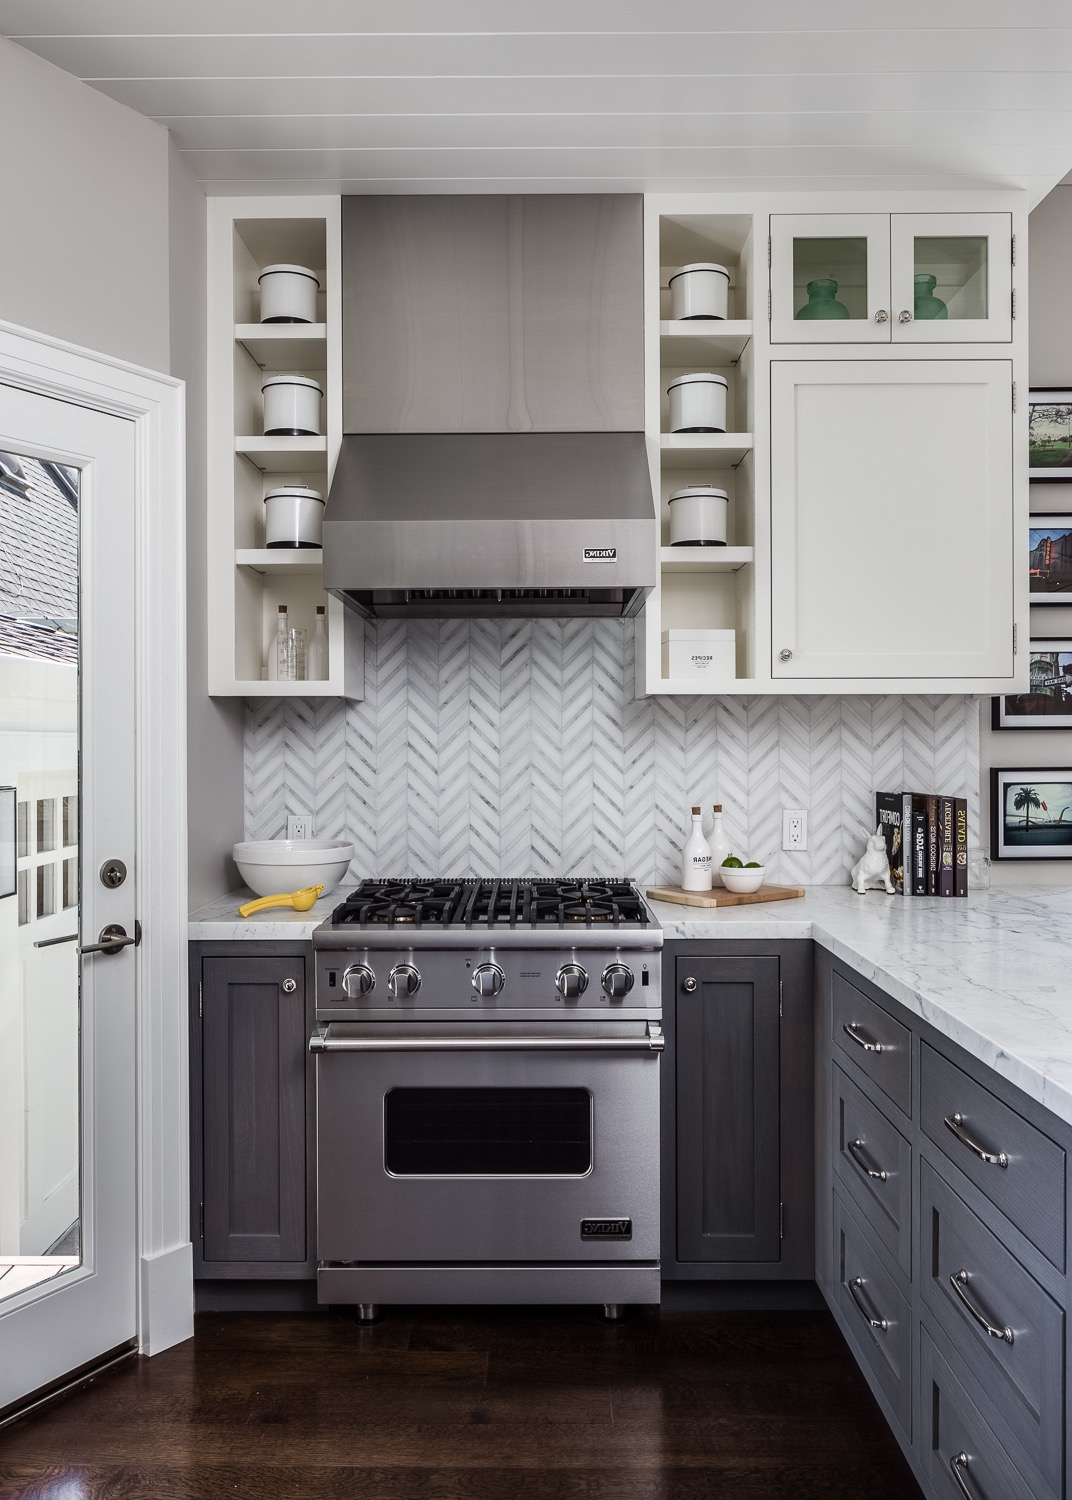 Small Corner Kitchen In Modern Design (Image 9 of 24)